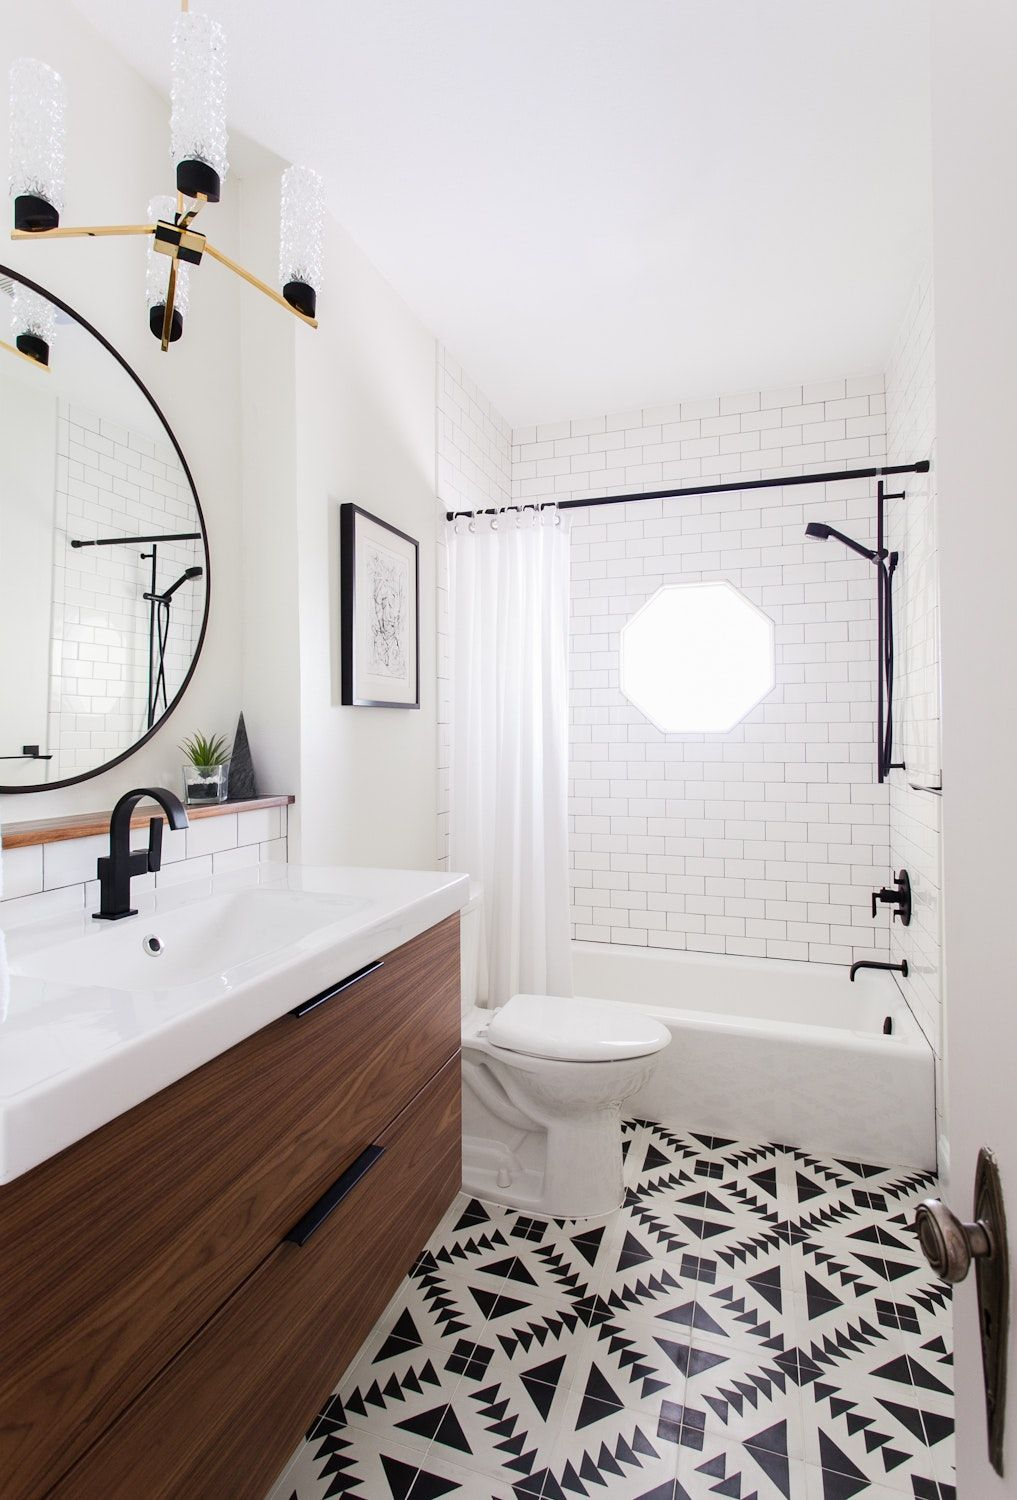 11 Times Ikea Storage Totally Shocked Us Bathroom Inspiration Small Bathroom Design Bathrooms Remodel